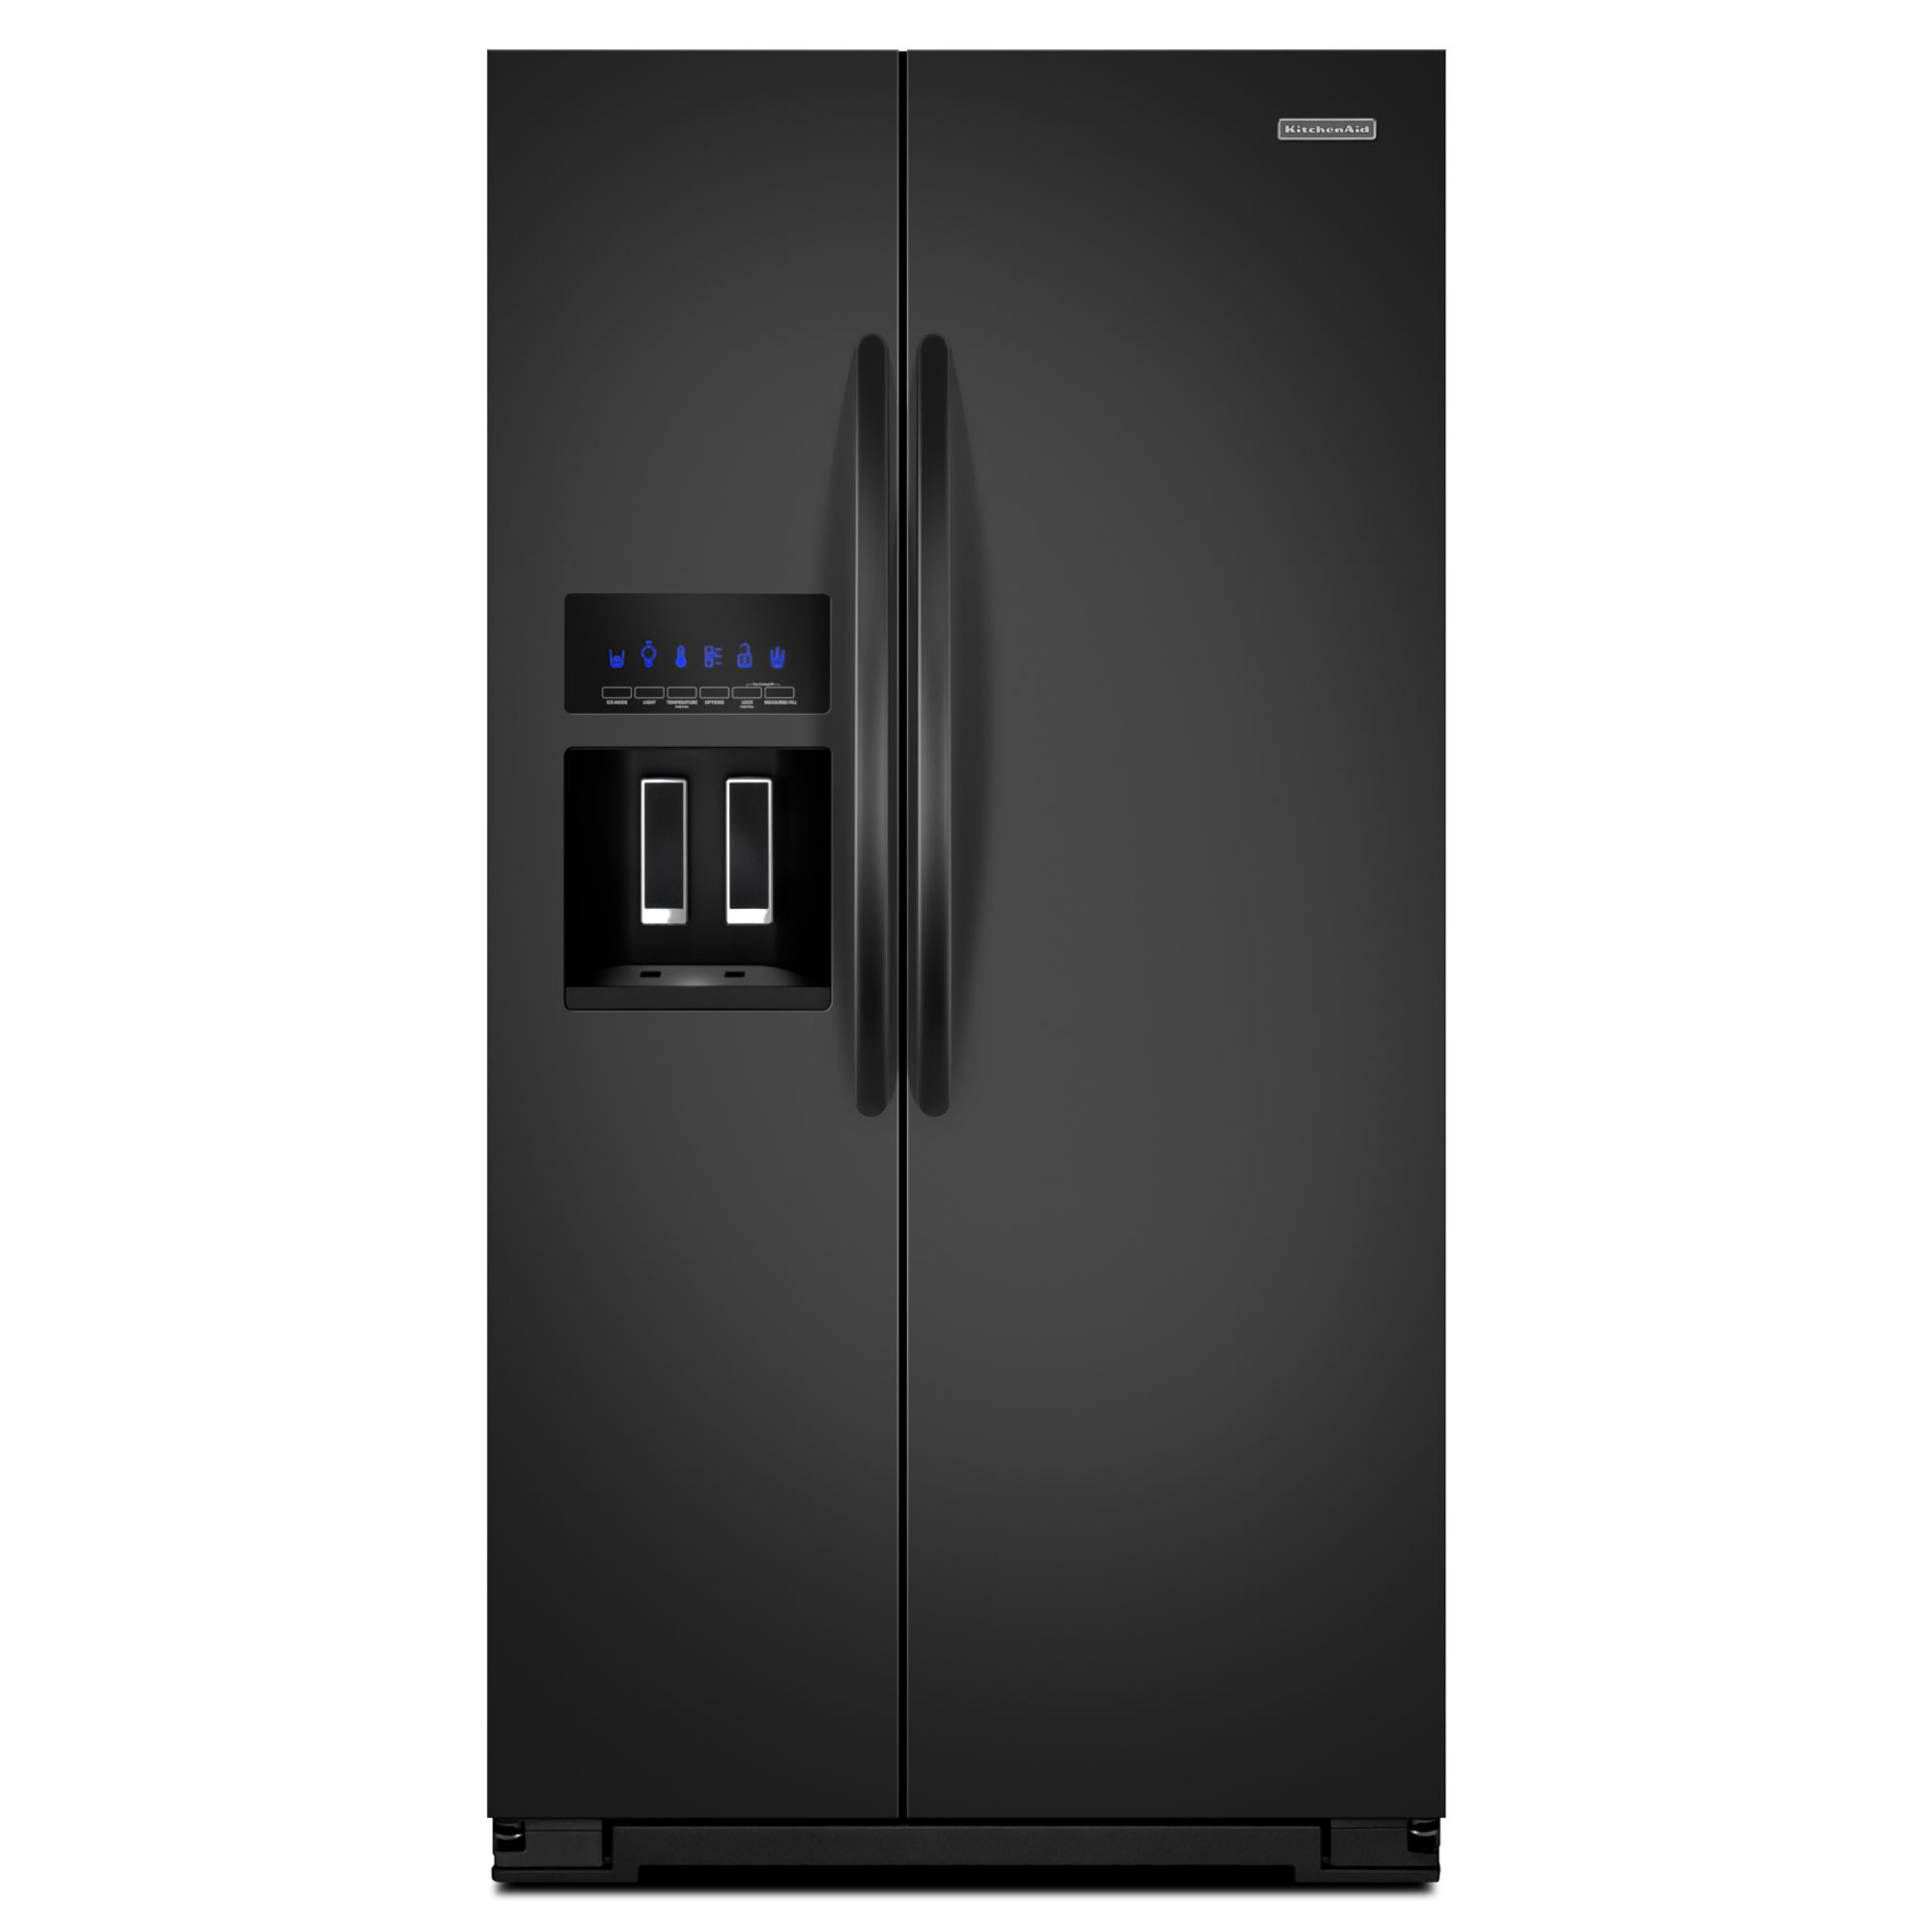 26.4 cu. ft. Side-by-Side Refrigerator w/ Flush Dispenser Design - Black